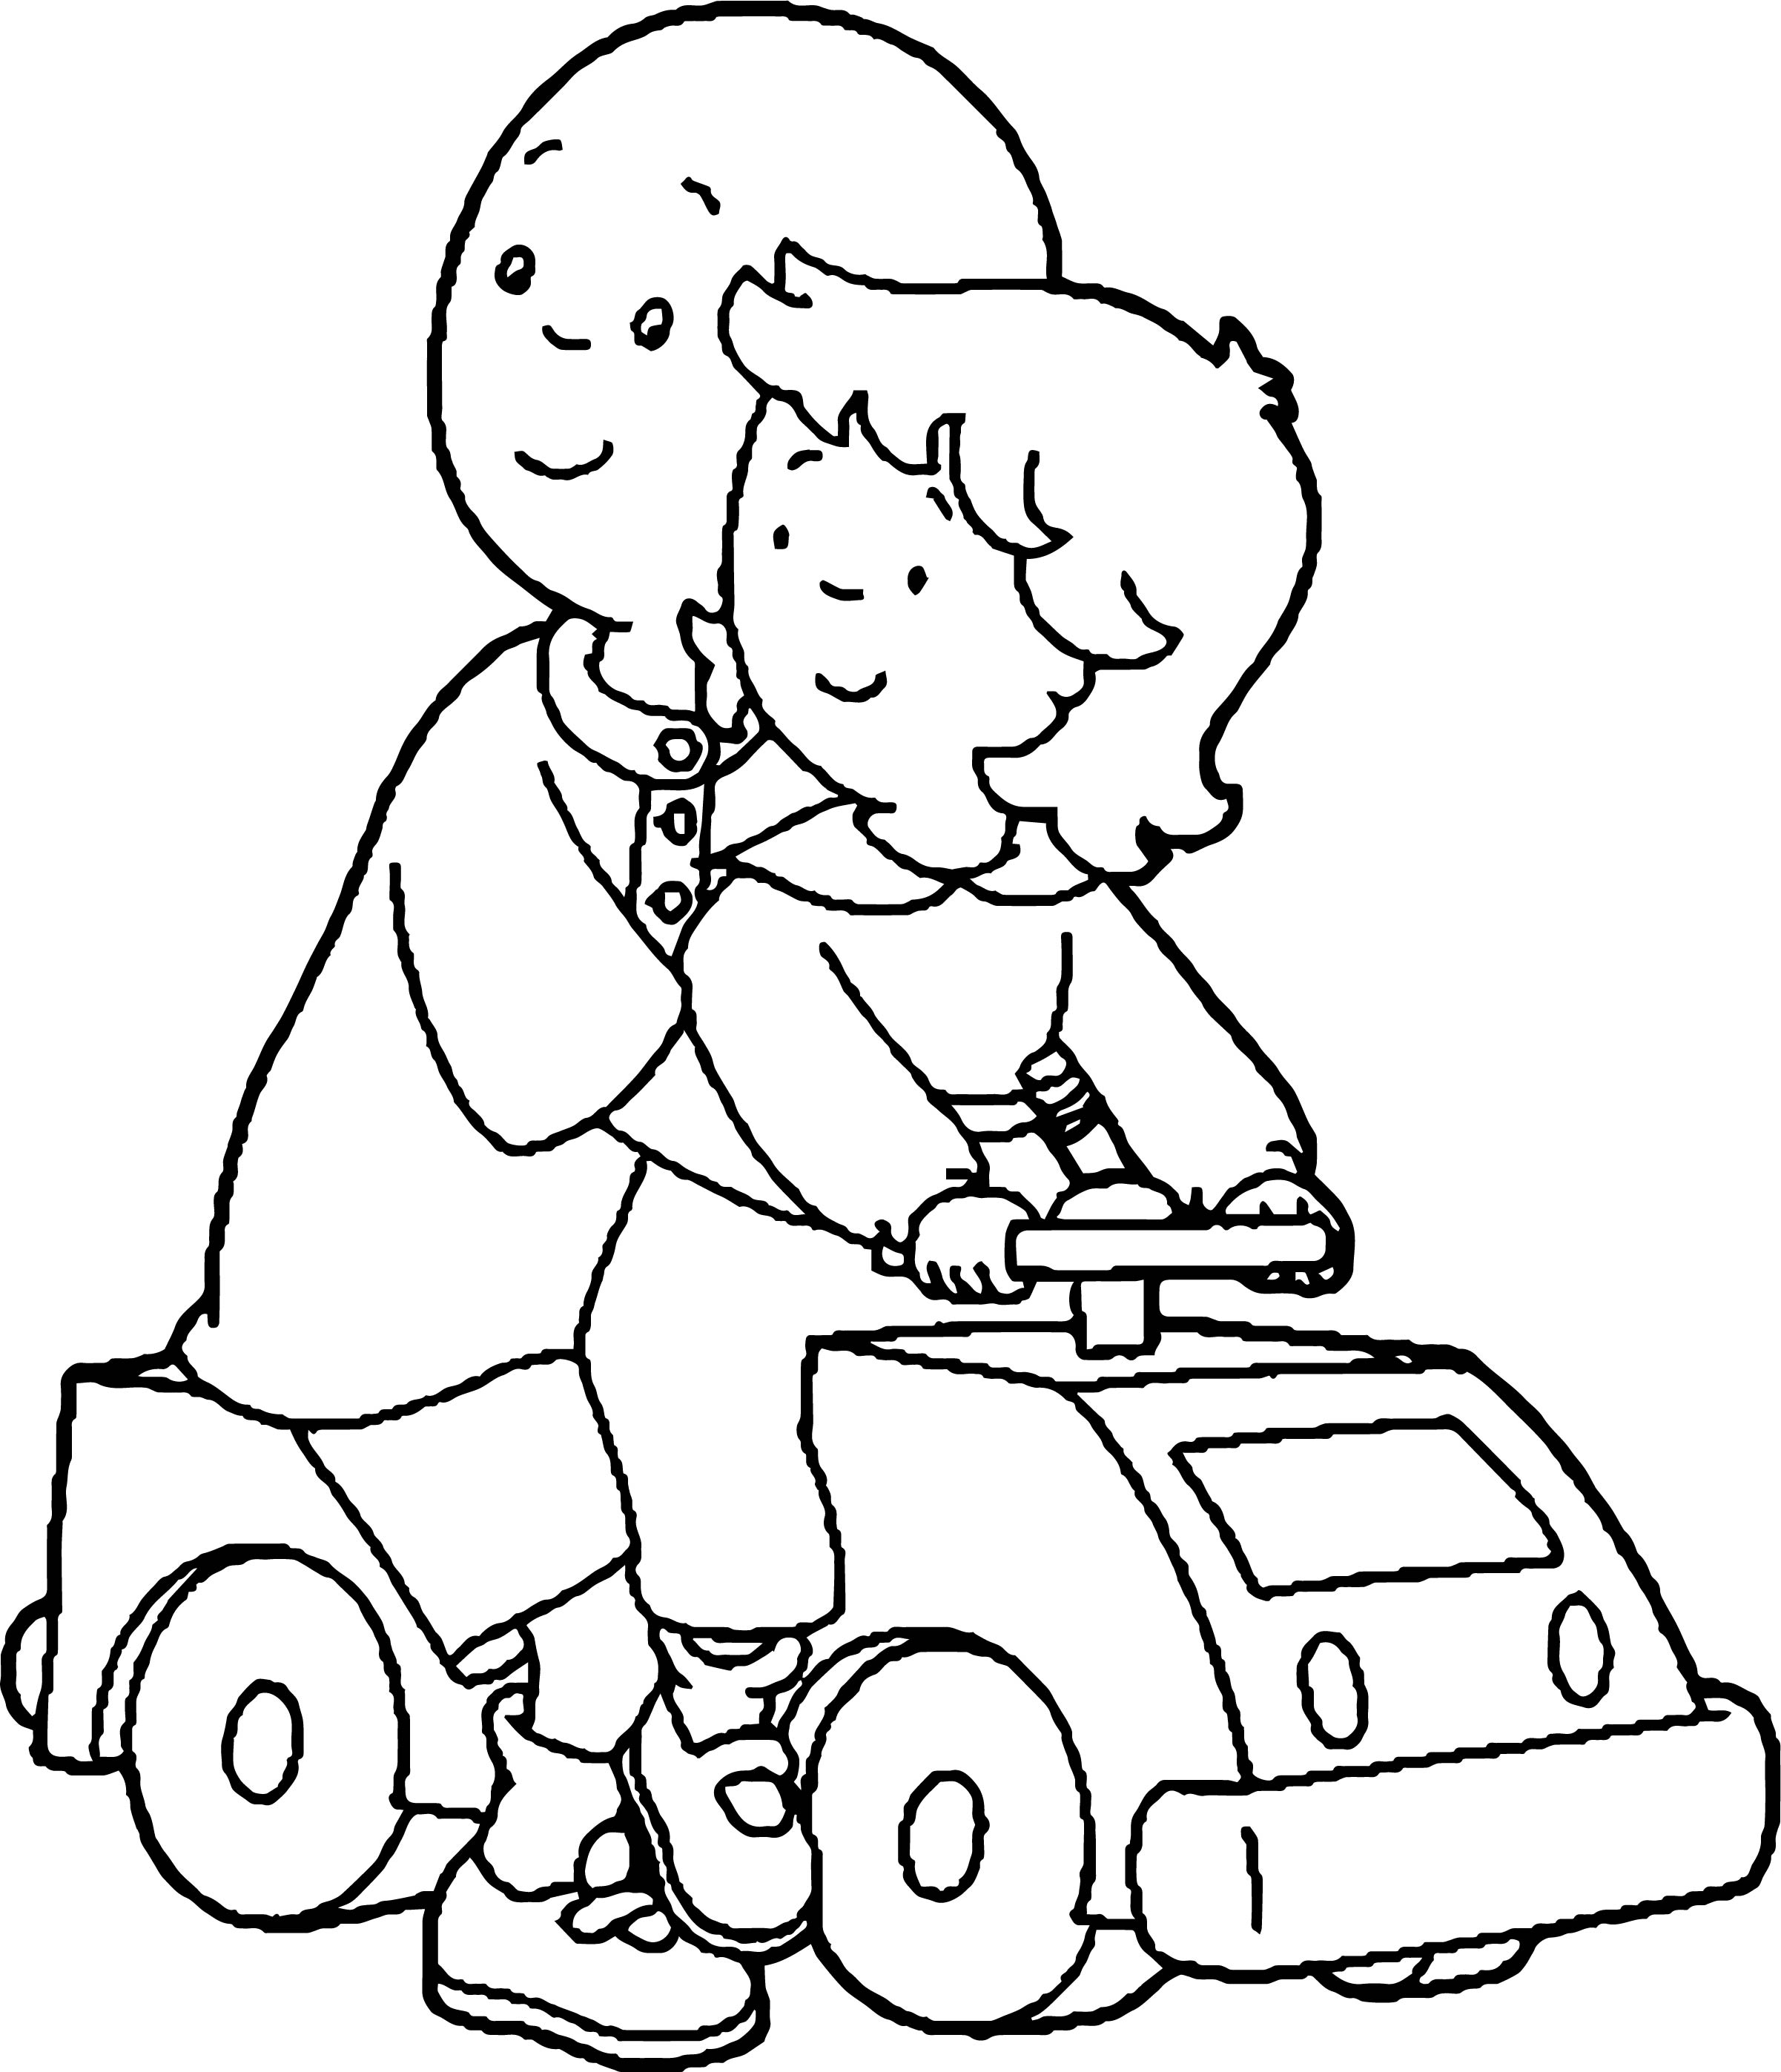 Caillou And Rosie Coloring Page